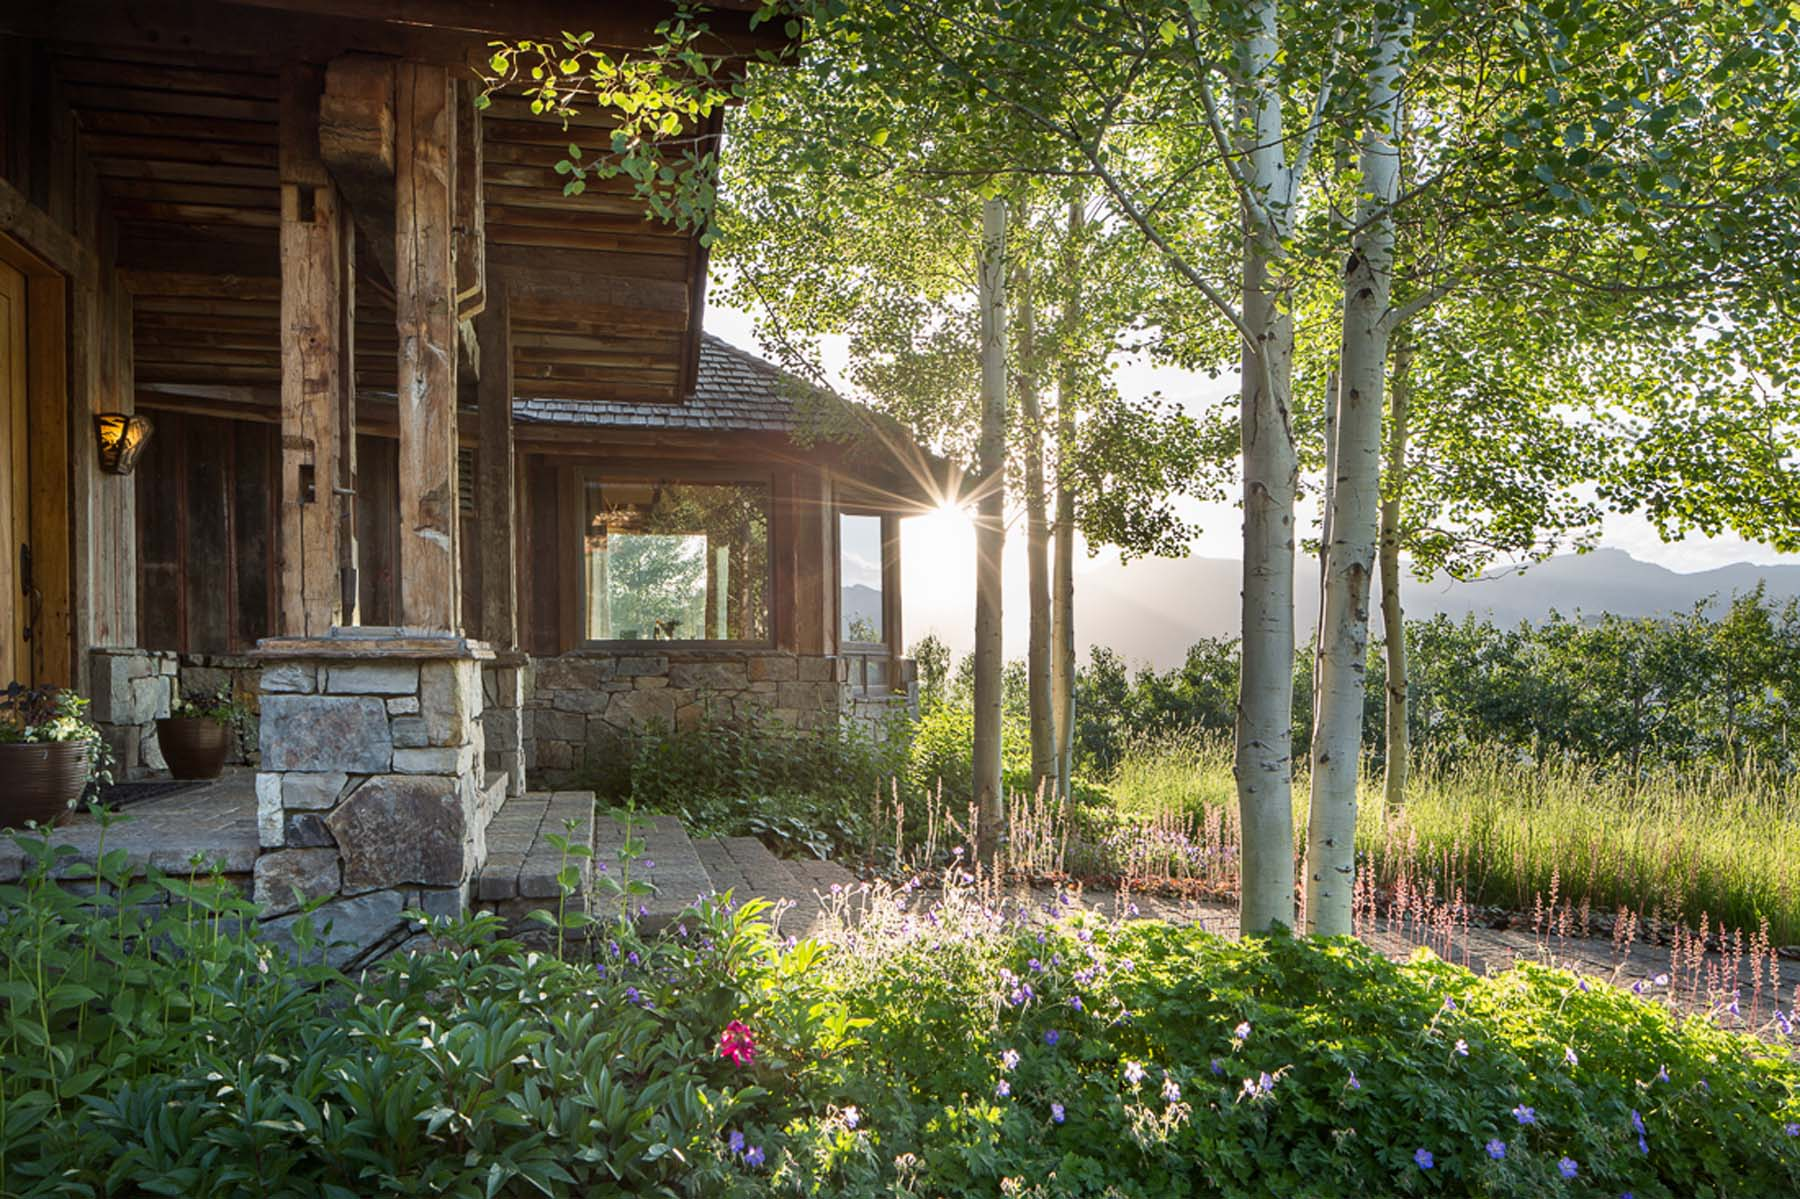 Villa per Vendita alle ore Rustic Elegance & Commanding Teton Views at Spring Creek Resort. 190 W Calliope Drive Jackson, Wyoming, 83001 Jackson Hole, Stati Uniti